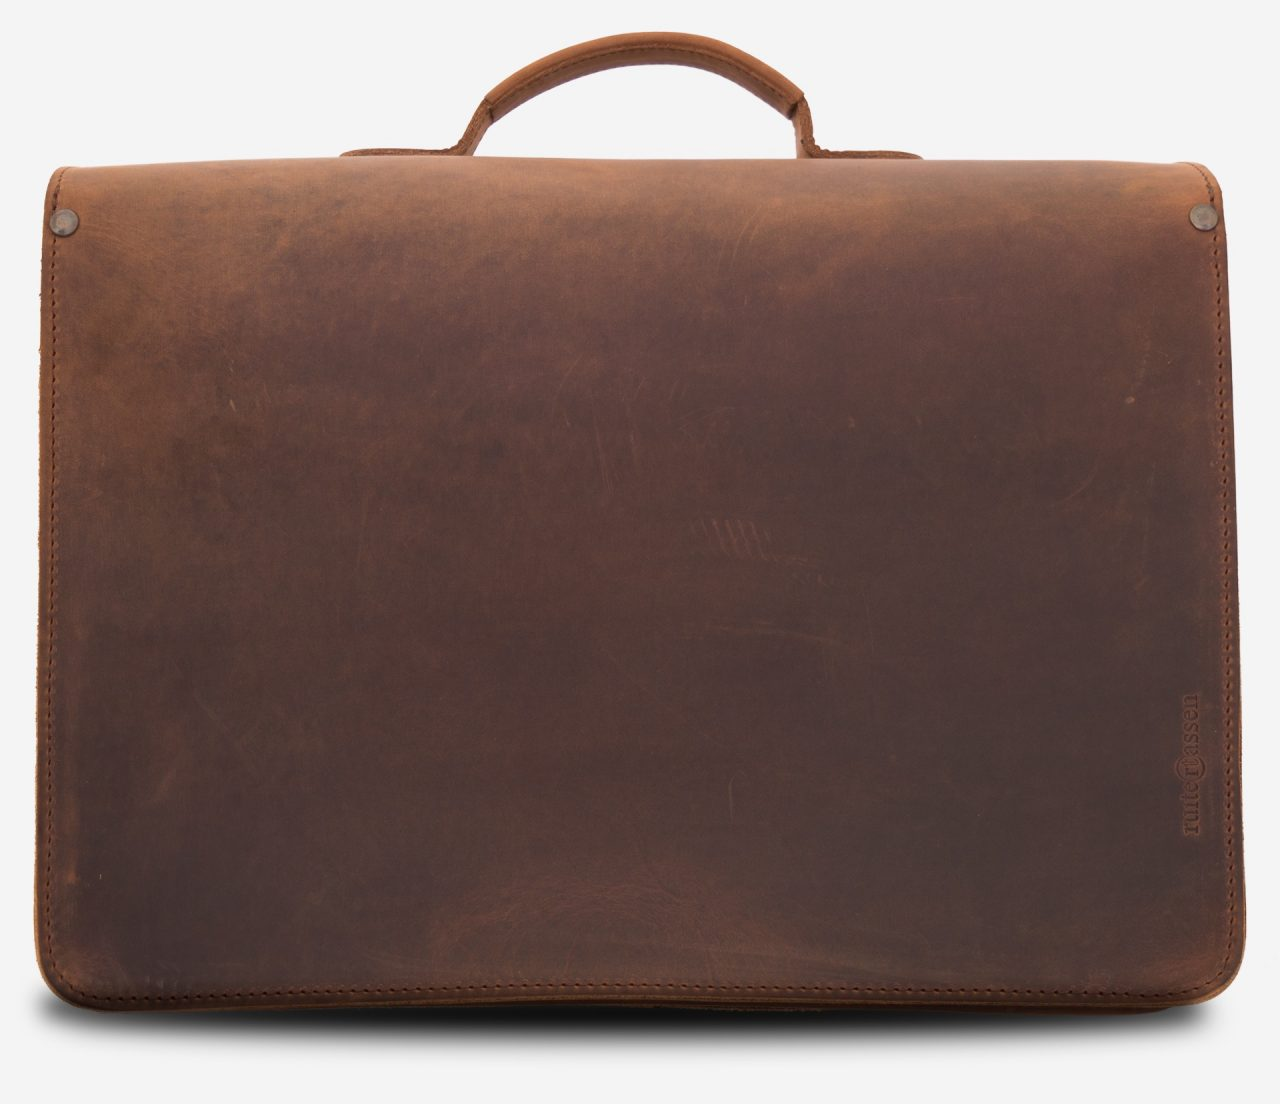 Back view of the brown leather satchel briefcase with Ruitertassen logo.